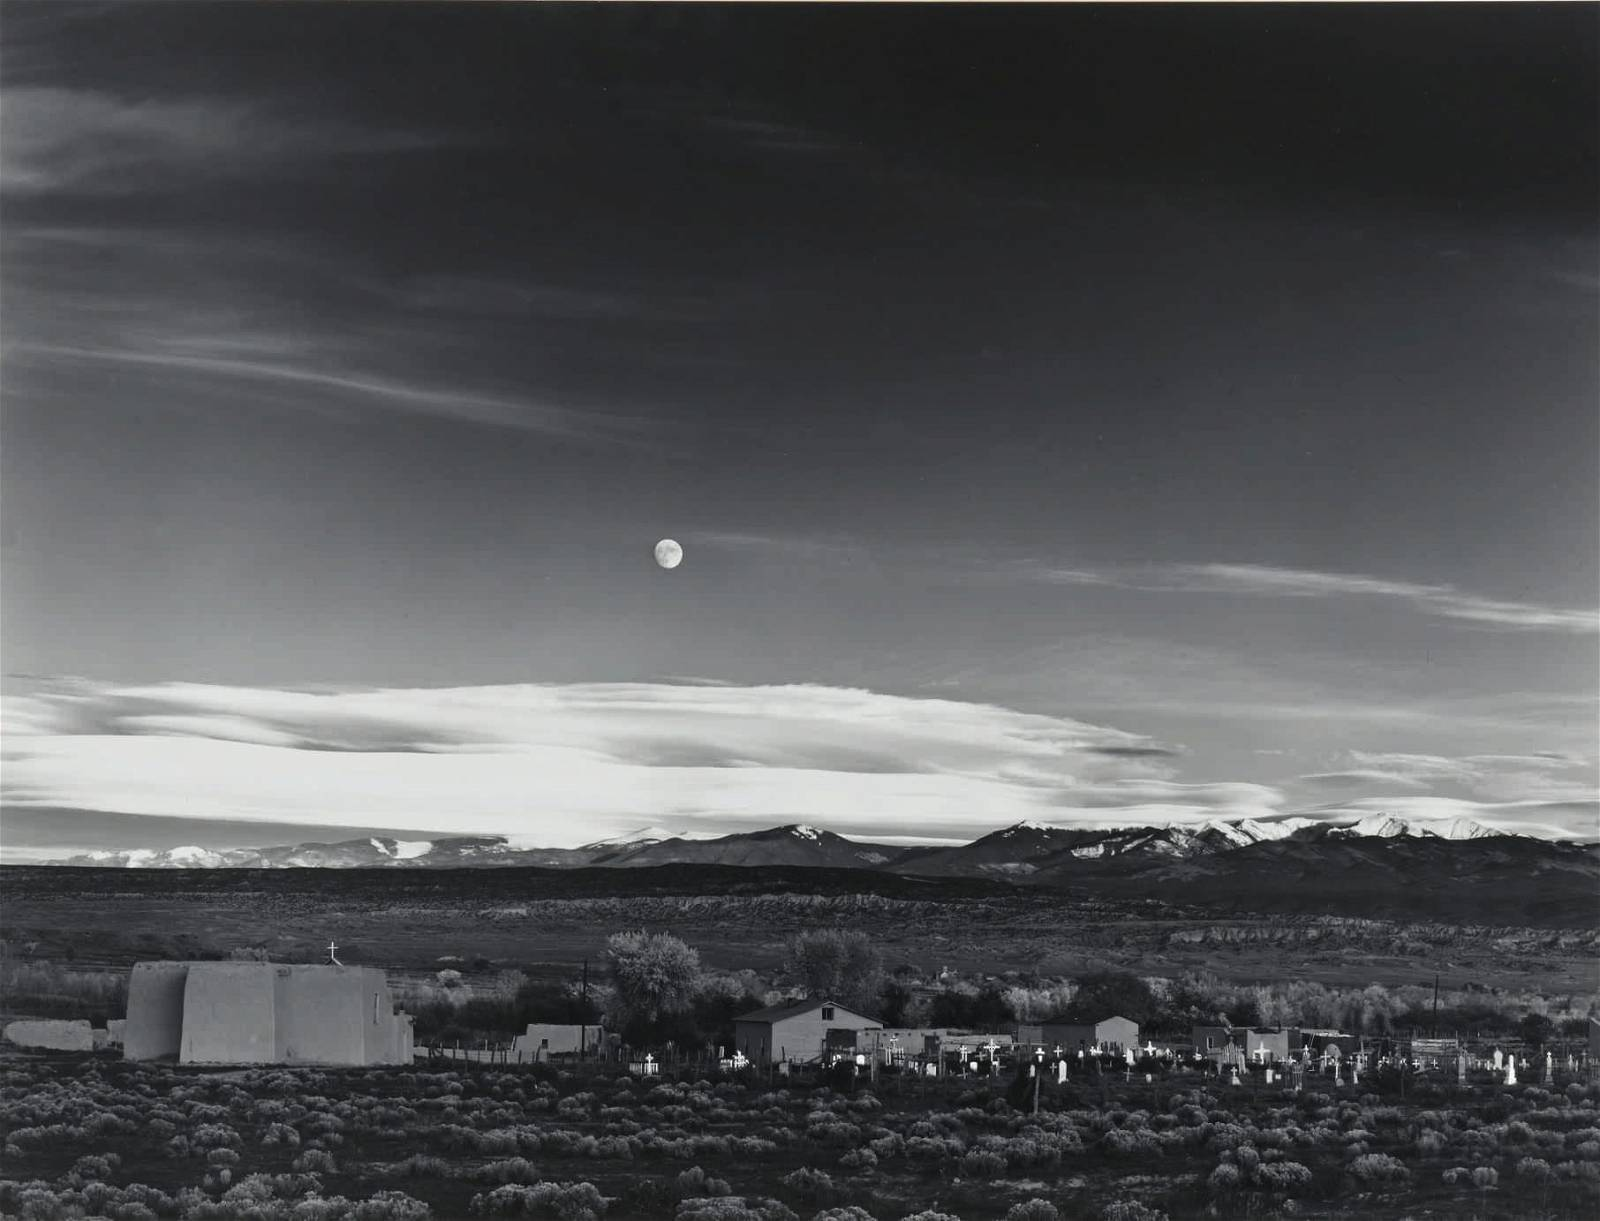 Ansel Adams Moonrise, Hernandez, New Mexico Estimate $700,000/1 million